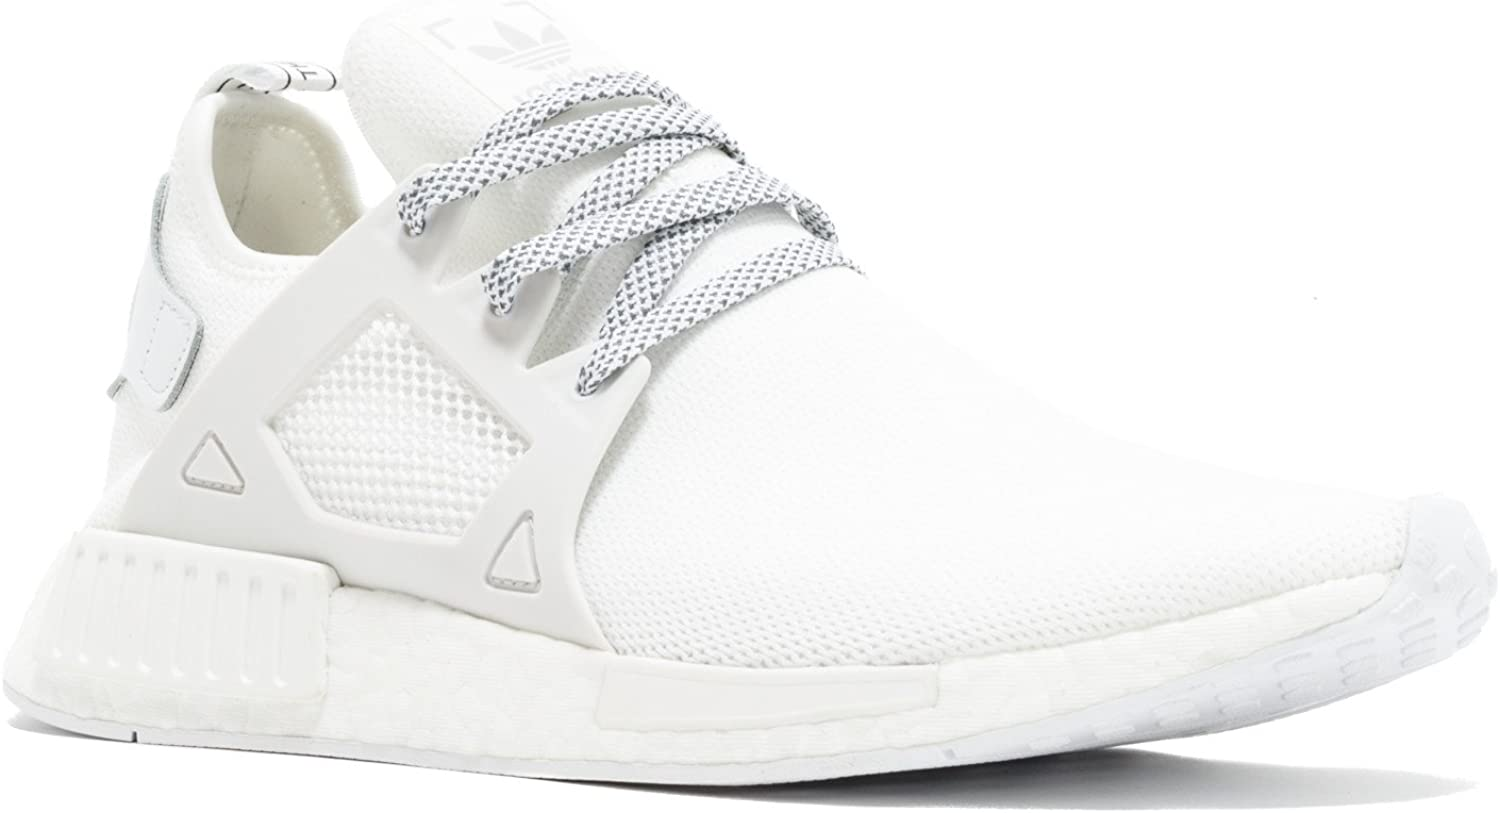 Adidas Originals NMD_XR1 Mens Running Trainers Turnschuhe schuhe (US 8, Weiß Weiß BY3052)